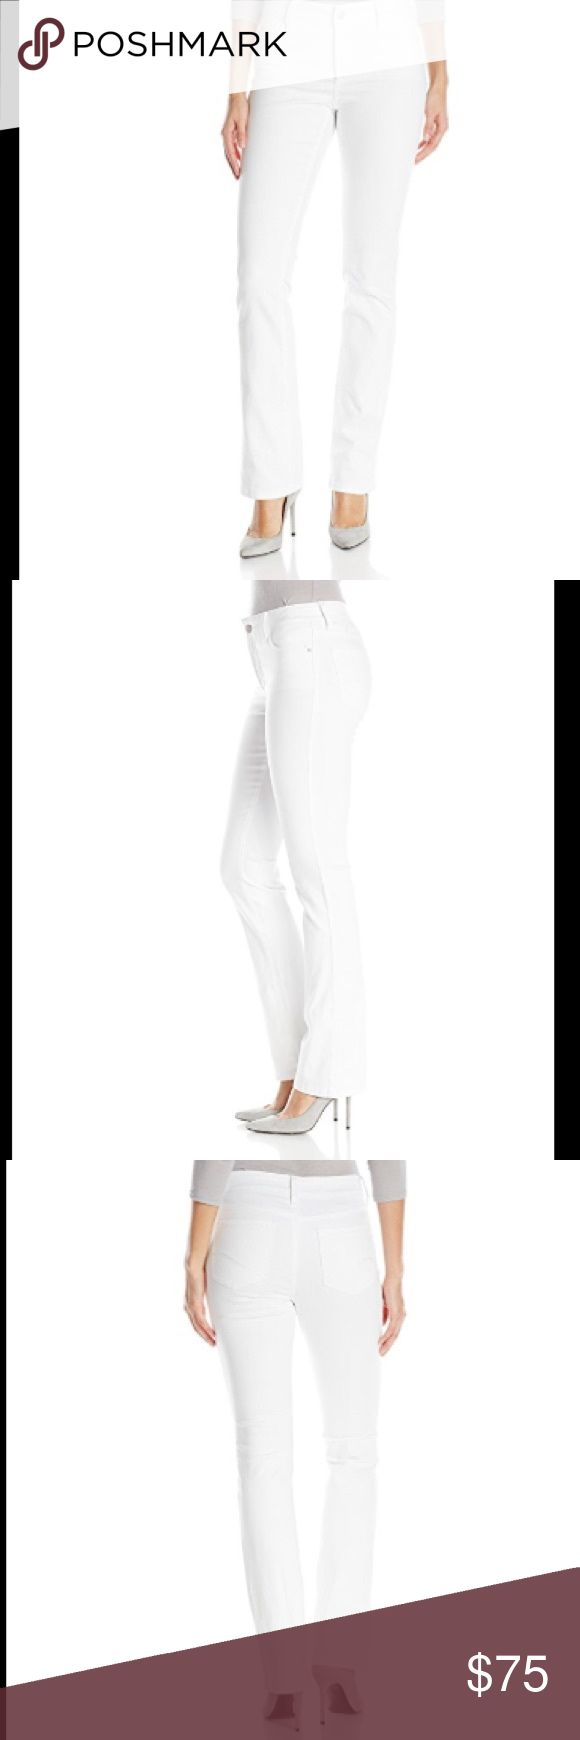 "NEW $195 NYDJ White Bootcut Jeans 18P NEW With Tags $195 NYDJ White Bootcut Jeans in size 18P. Inseam: approx 30"".                      98% Cotton, 2% Spandex Zipper closure Machine Wash Mini bootcut jean featuring classic five-pocket styling and zip fly with button Lift tuck technology NYDJ Jeans Boot Cut"